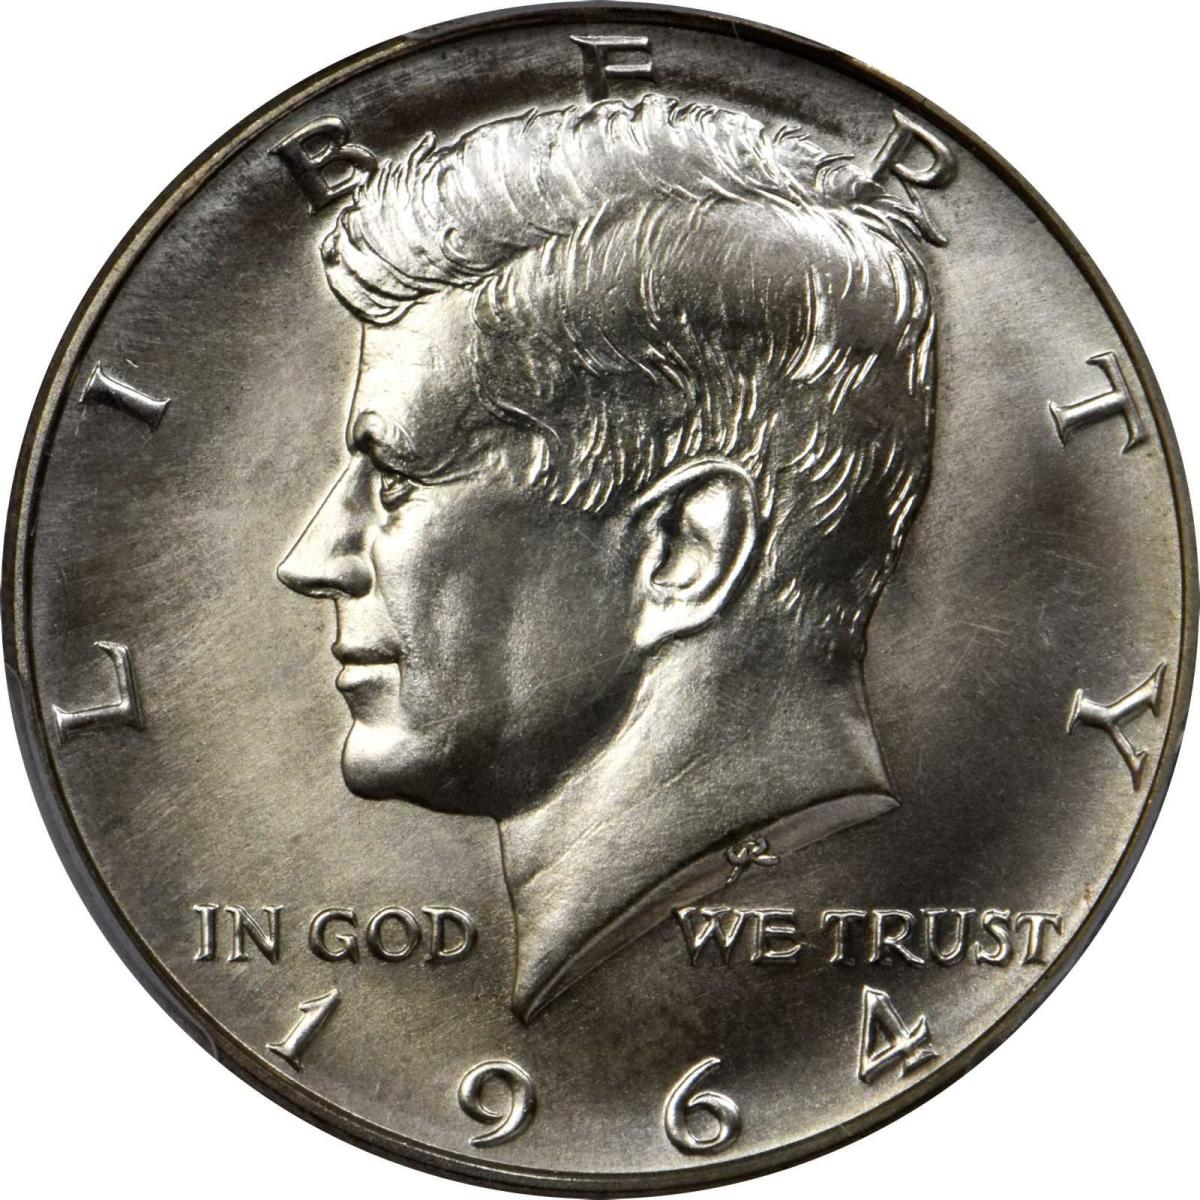 Shown here is the 1964 SMS Kennedy half dollar that sold for $156,000. (Image courtesy of Stack's Bowers)